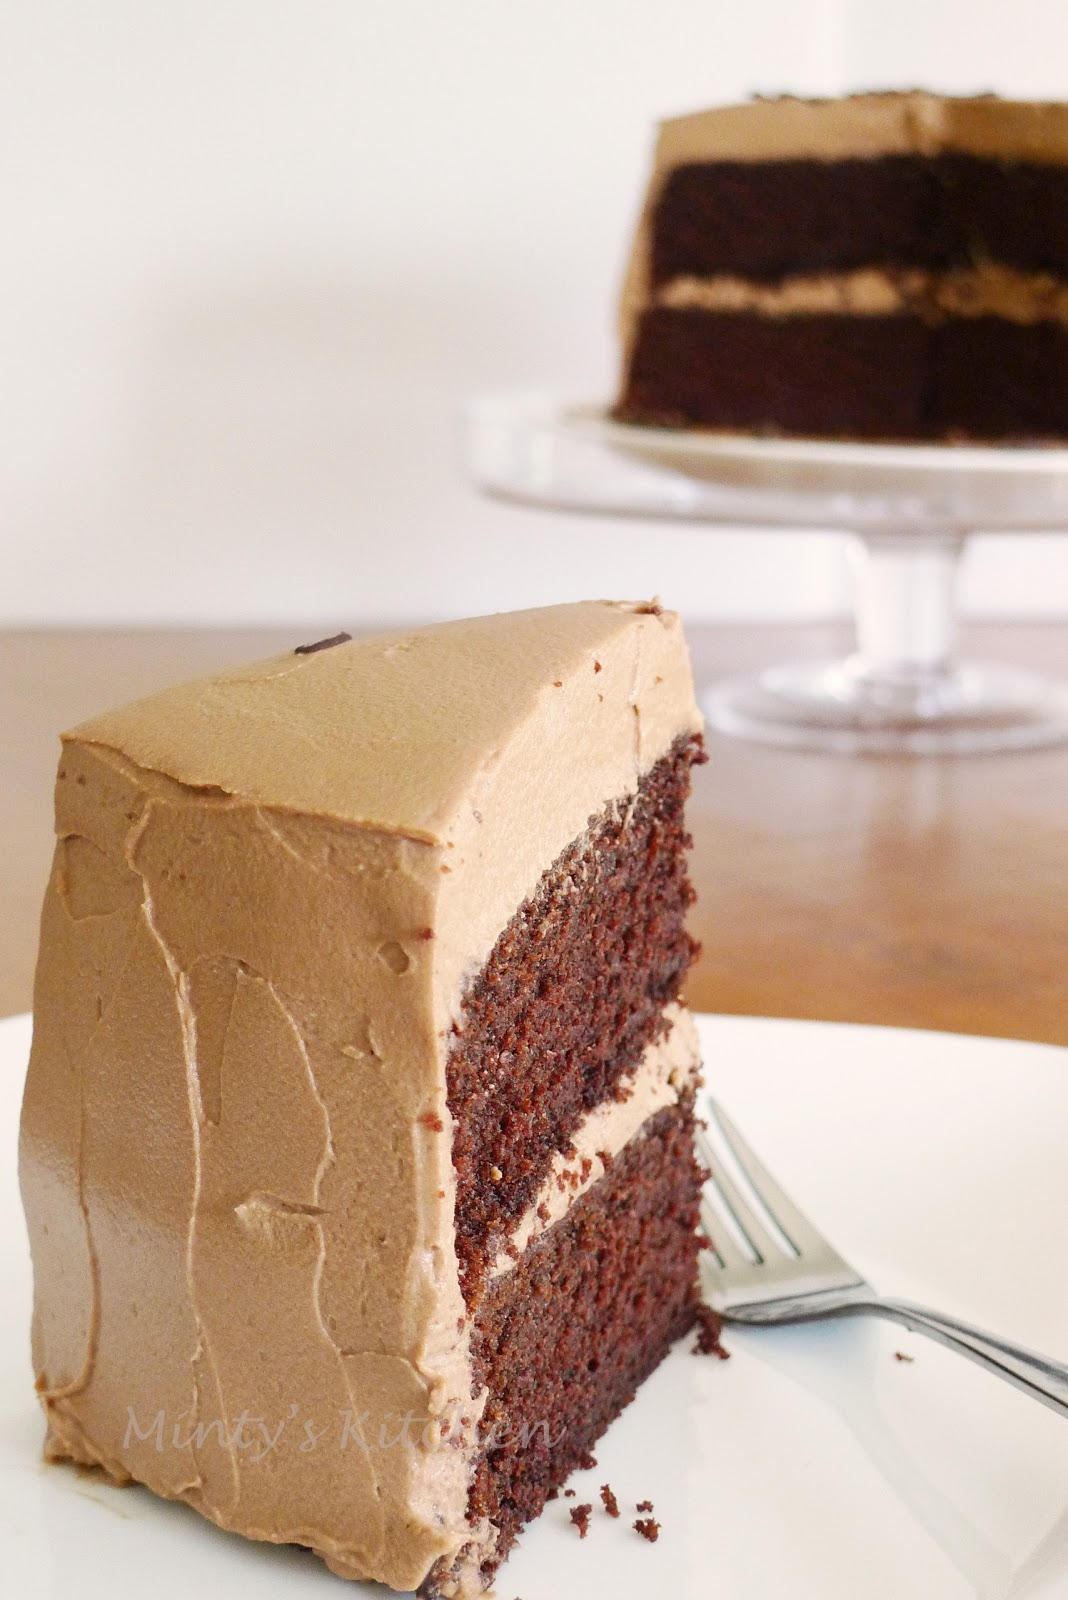 Chocolate Layer Cake With Mocha Milk Chocolate Frosting Recipes ...